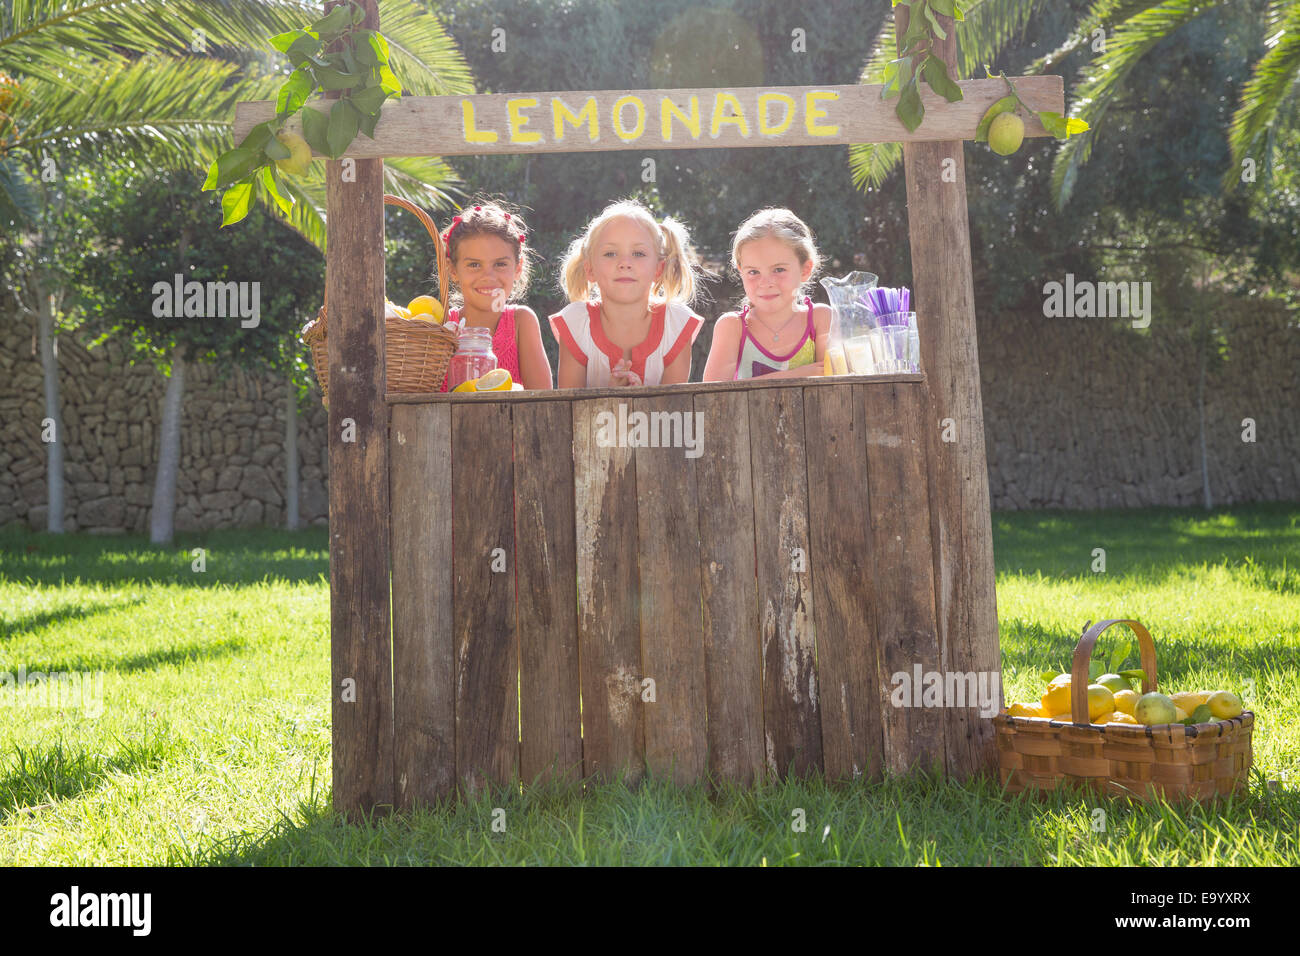 Portrait of three girls selling lemonade at stand in park - Stock Image